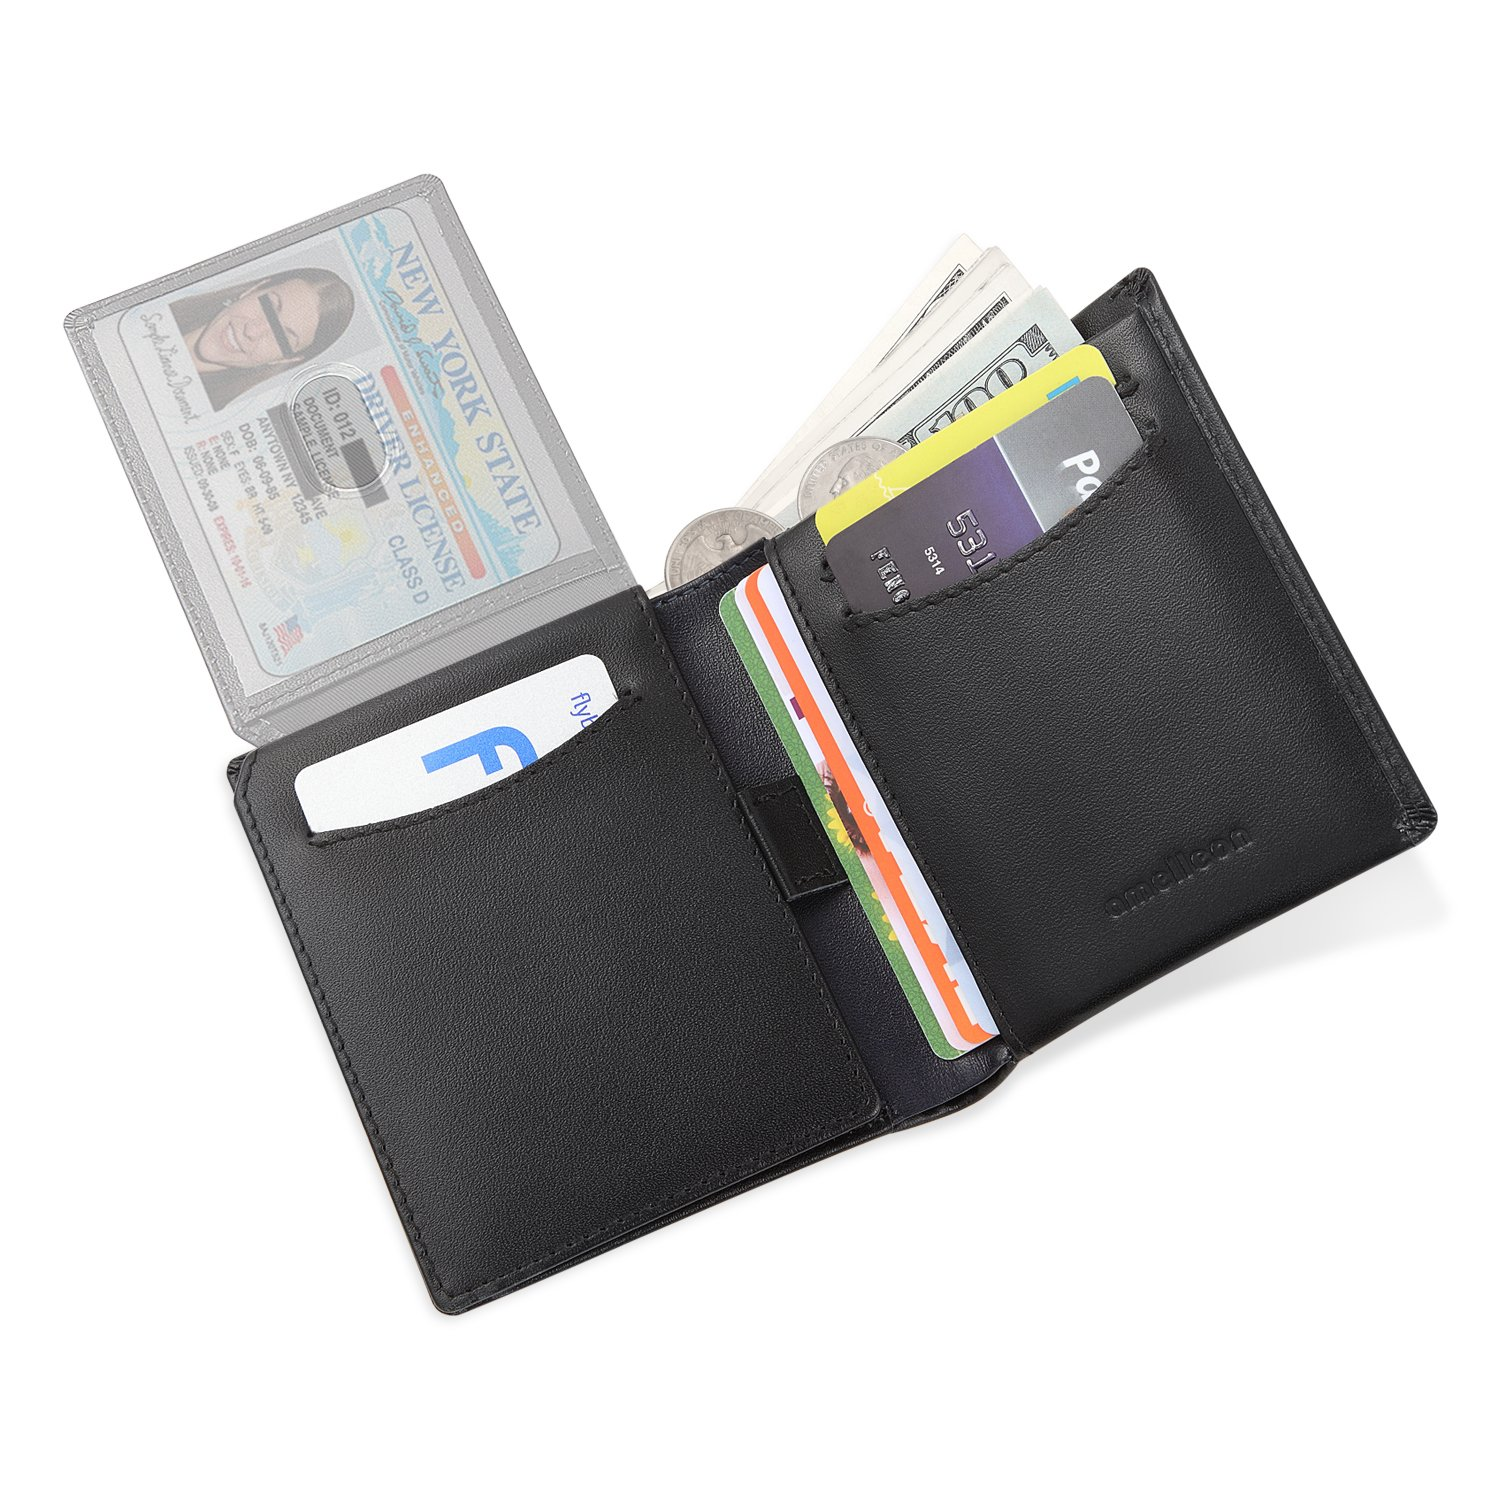 Amelleon Trifold Bifold Genuine Leather RFID Wallets for Men – ID & Photo Window,10 Credit Card Slots,Bill & Coin Pockets-For Work,Travel,Gift&More (Black) by amelleon (Image #7)